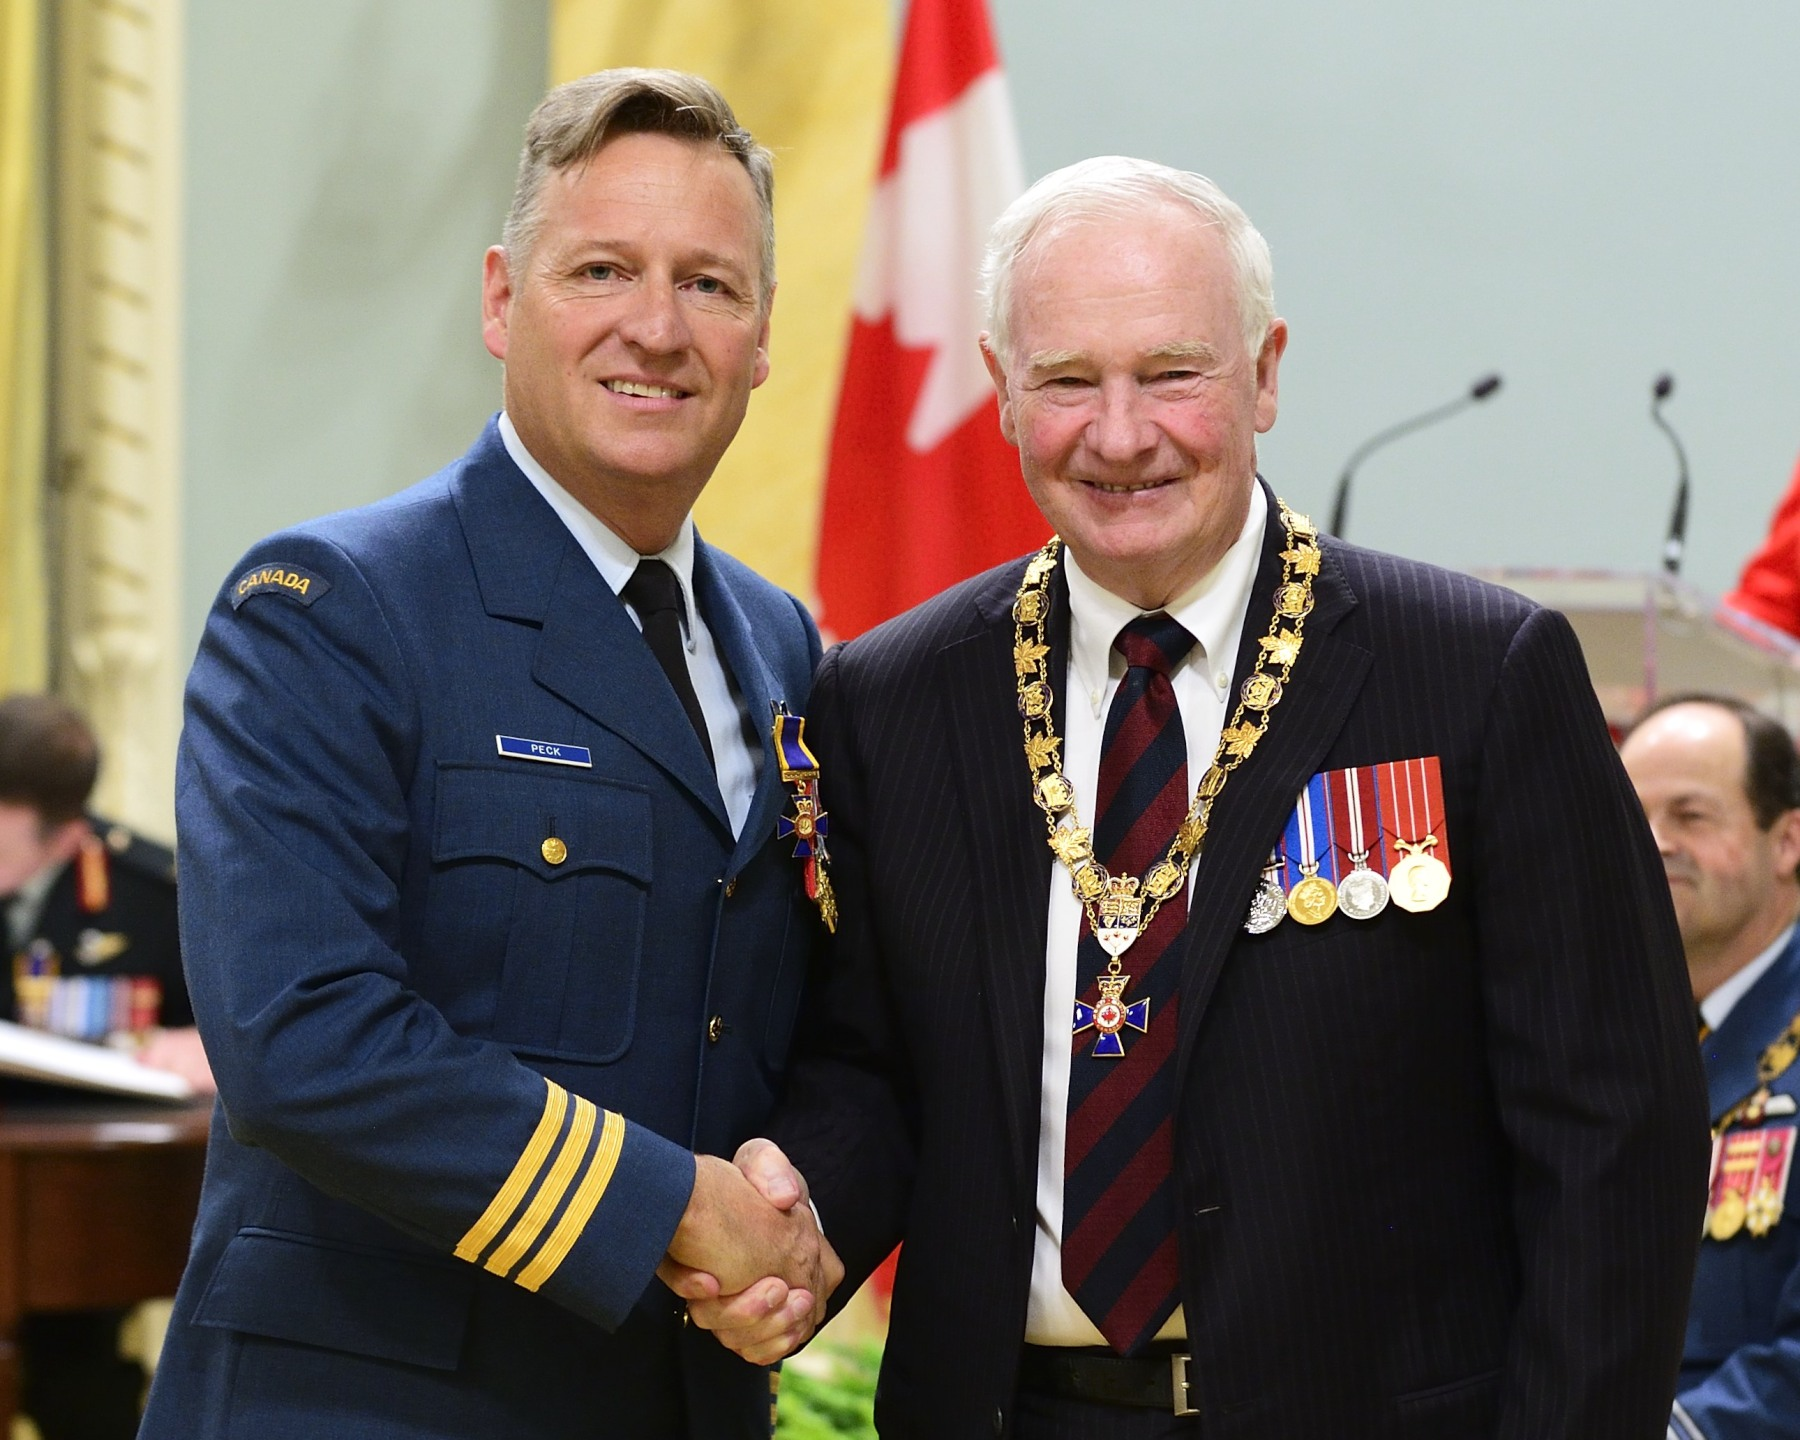 His Excellency presented the Order of Military Merit at the Officer level (O.M.M.) to Lieutenant-Colonel James Peck, O.M.M., C.D., 21 Aerospace Control and Warning Squadron, Hornell Heights, Ontario.